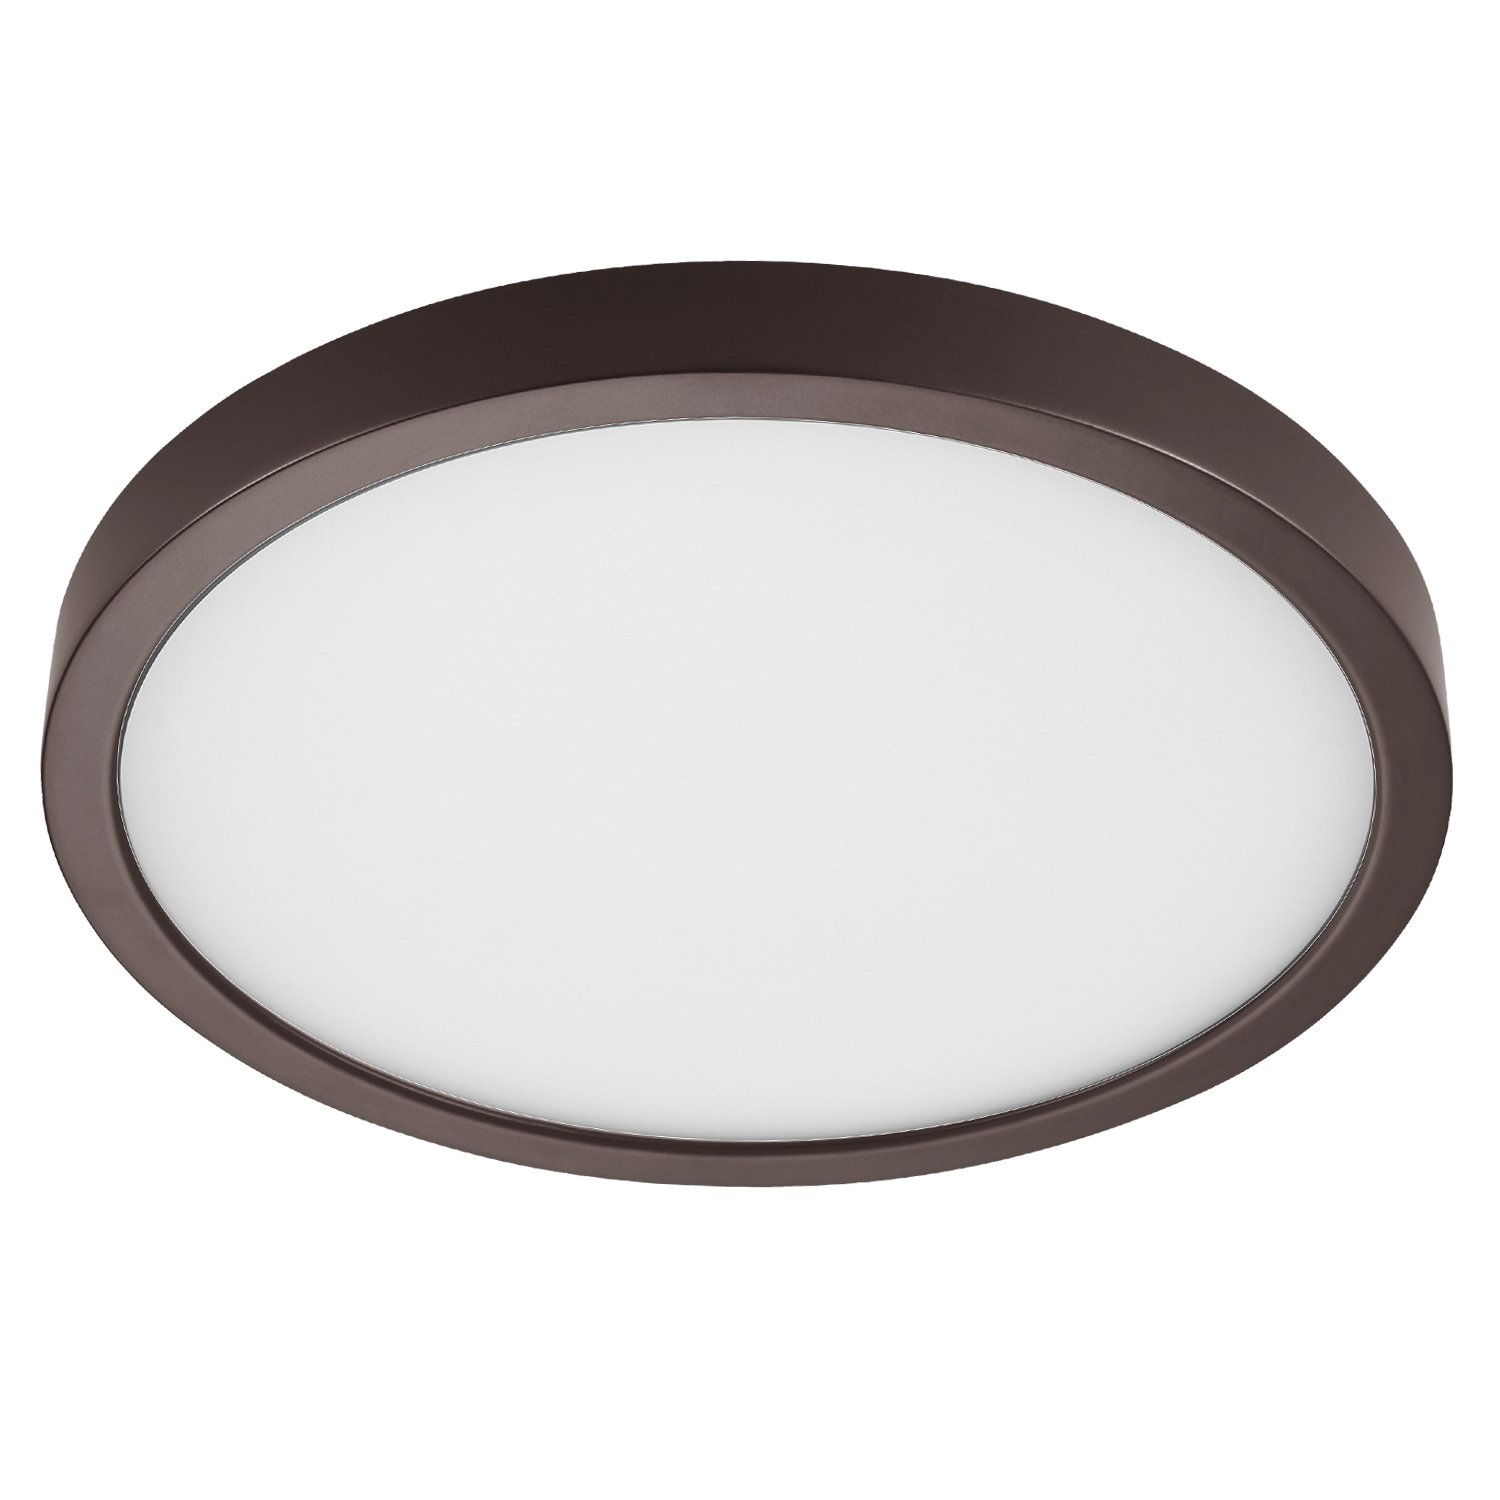 GetInLight Round 10-inch Dimmable Flush Mount Ceiling Fixture, (2nd Generation), 17 Watt, Bronze Finish, 3000K Soft White, 100W Replacement, Damp Location Rated, ETL Listed, IN-0306-3-BZ by GetInLight